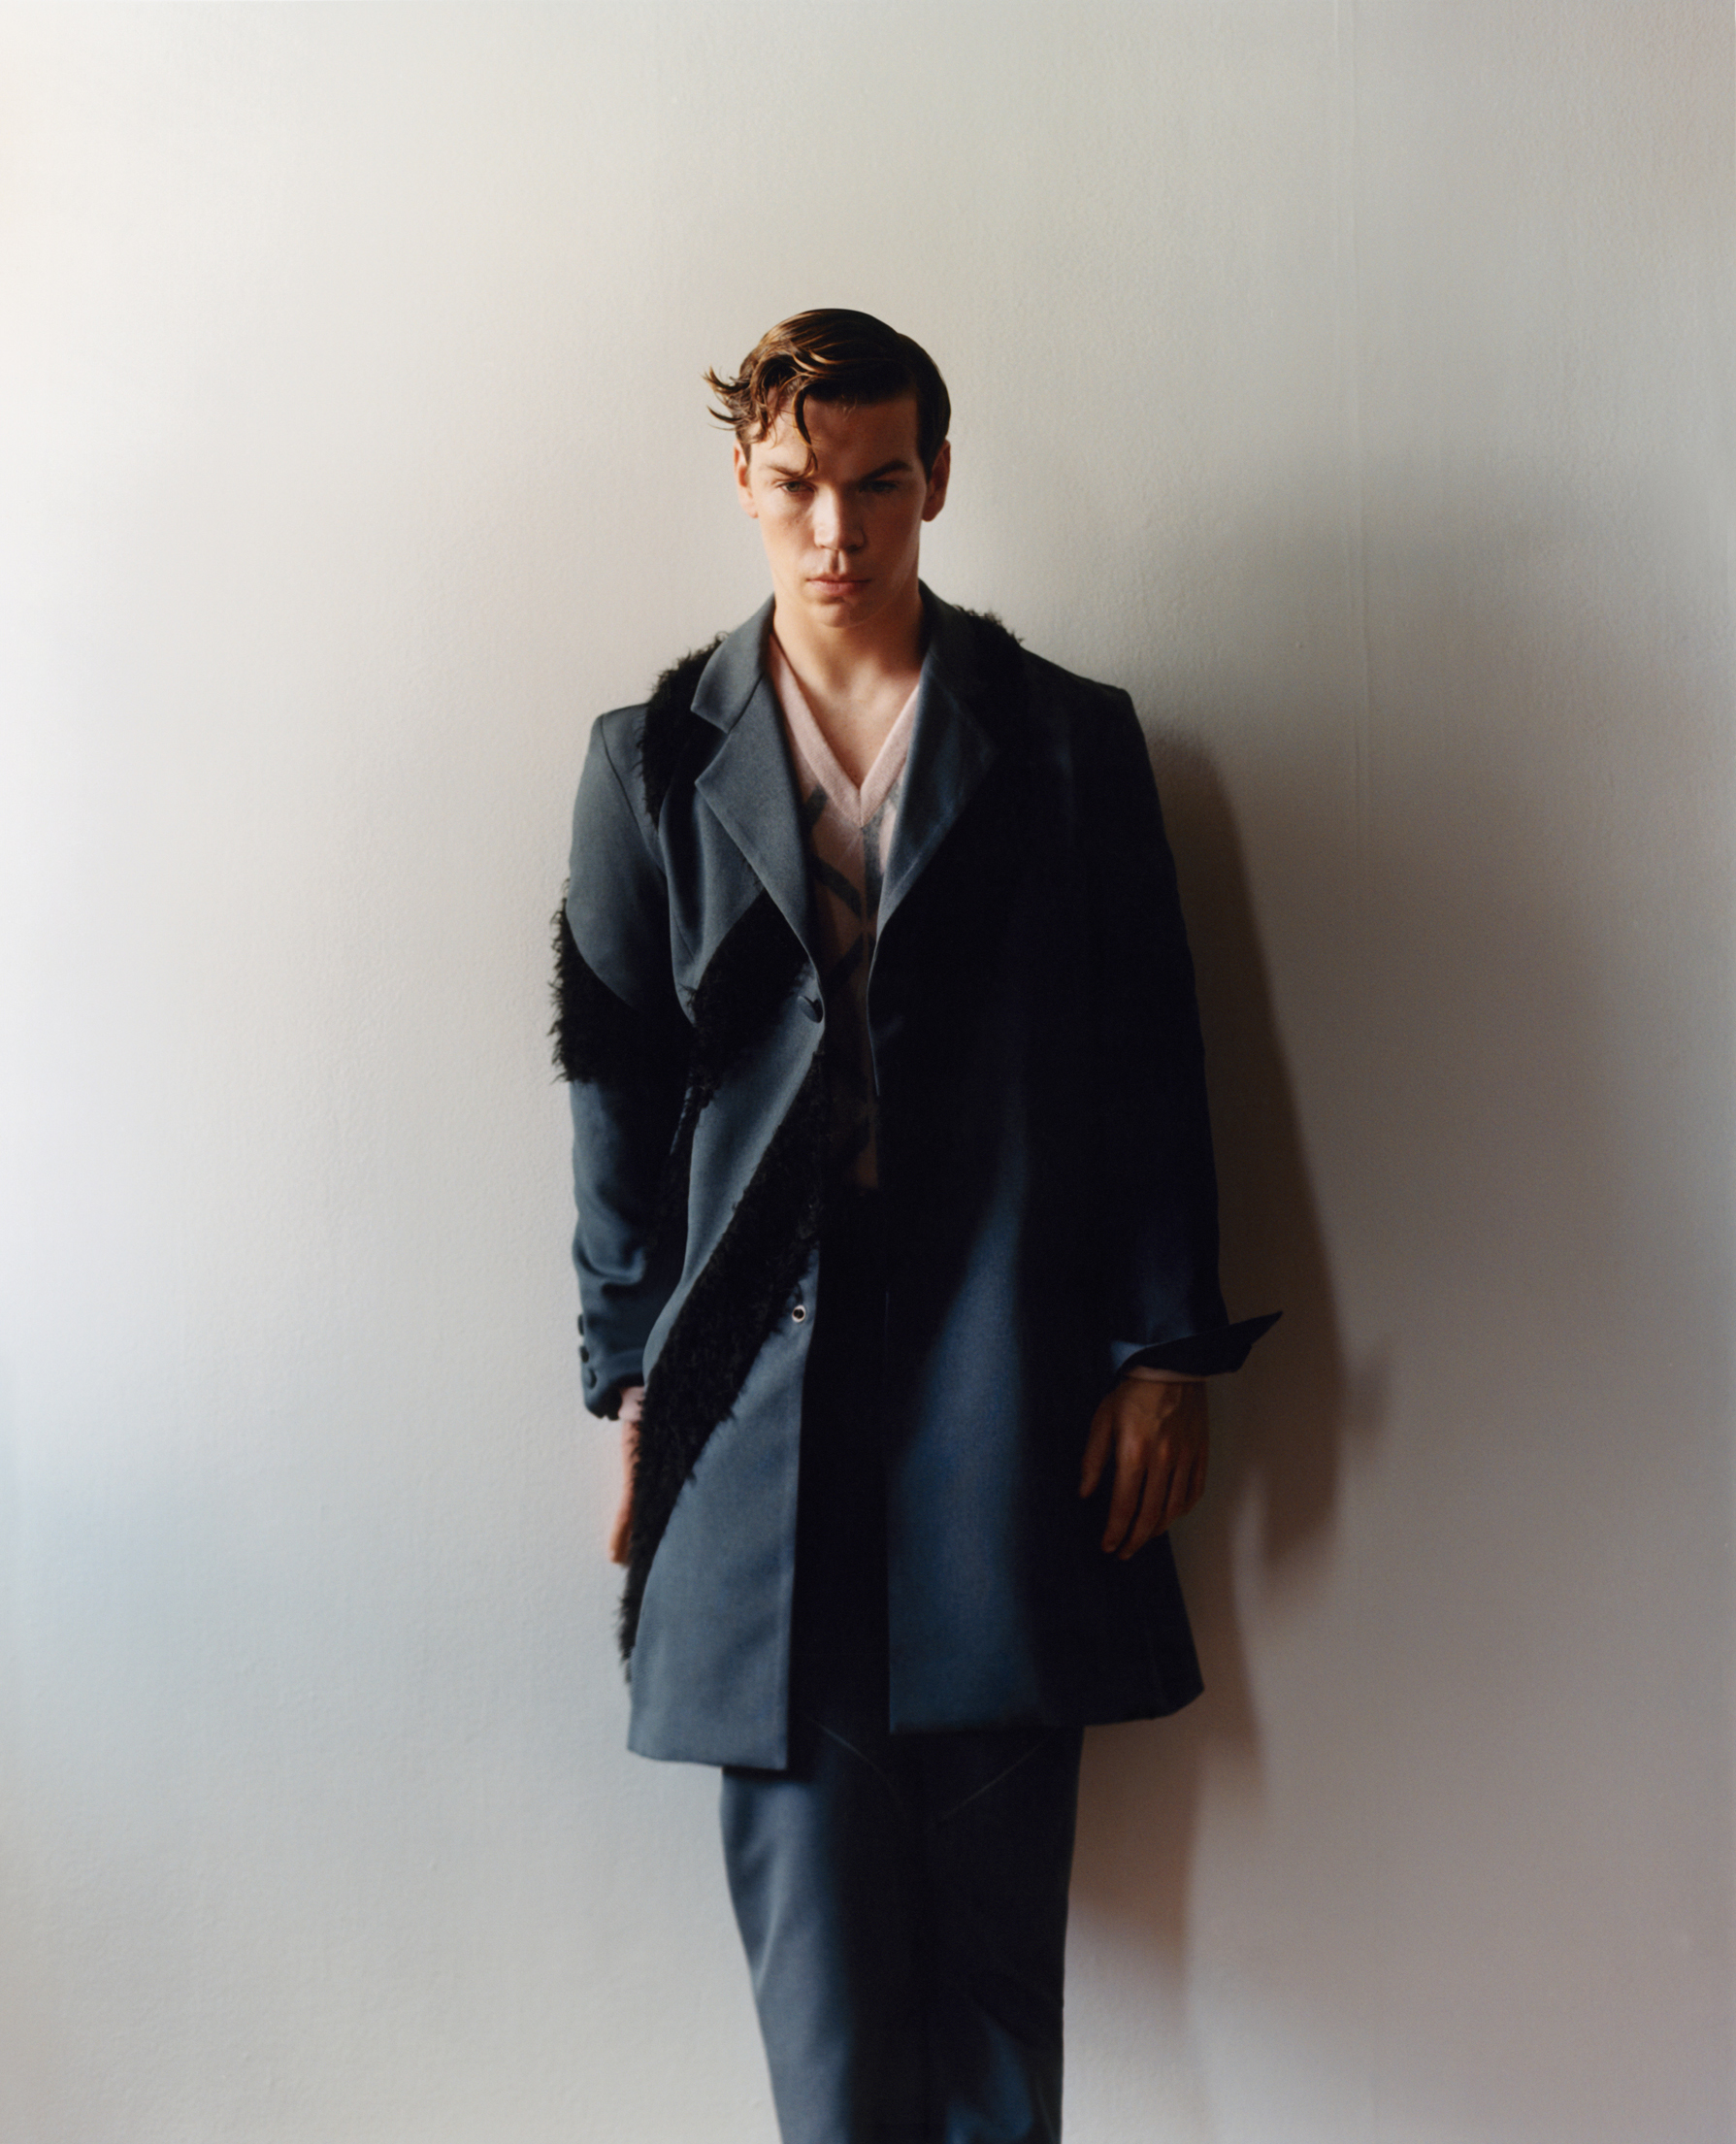 Coat and trousers by Kiko Kostadinov. Sweater by Dior Men.